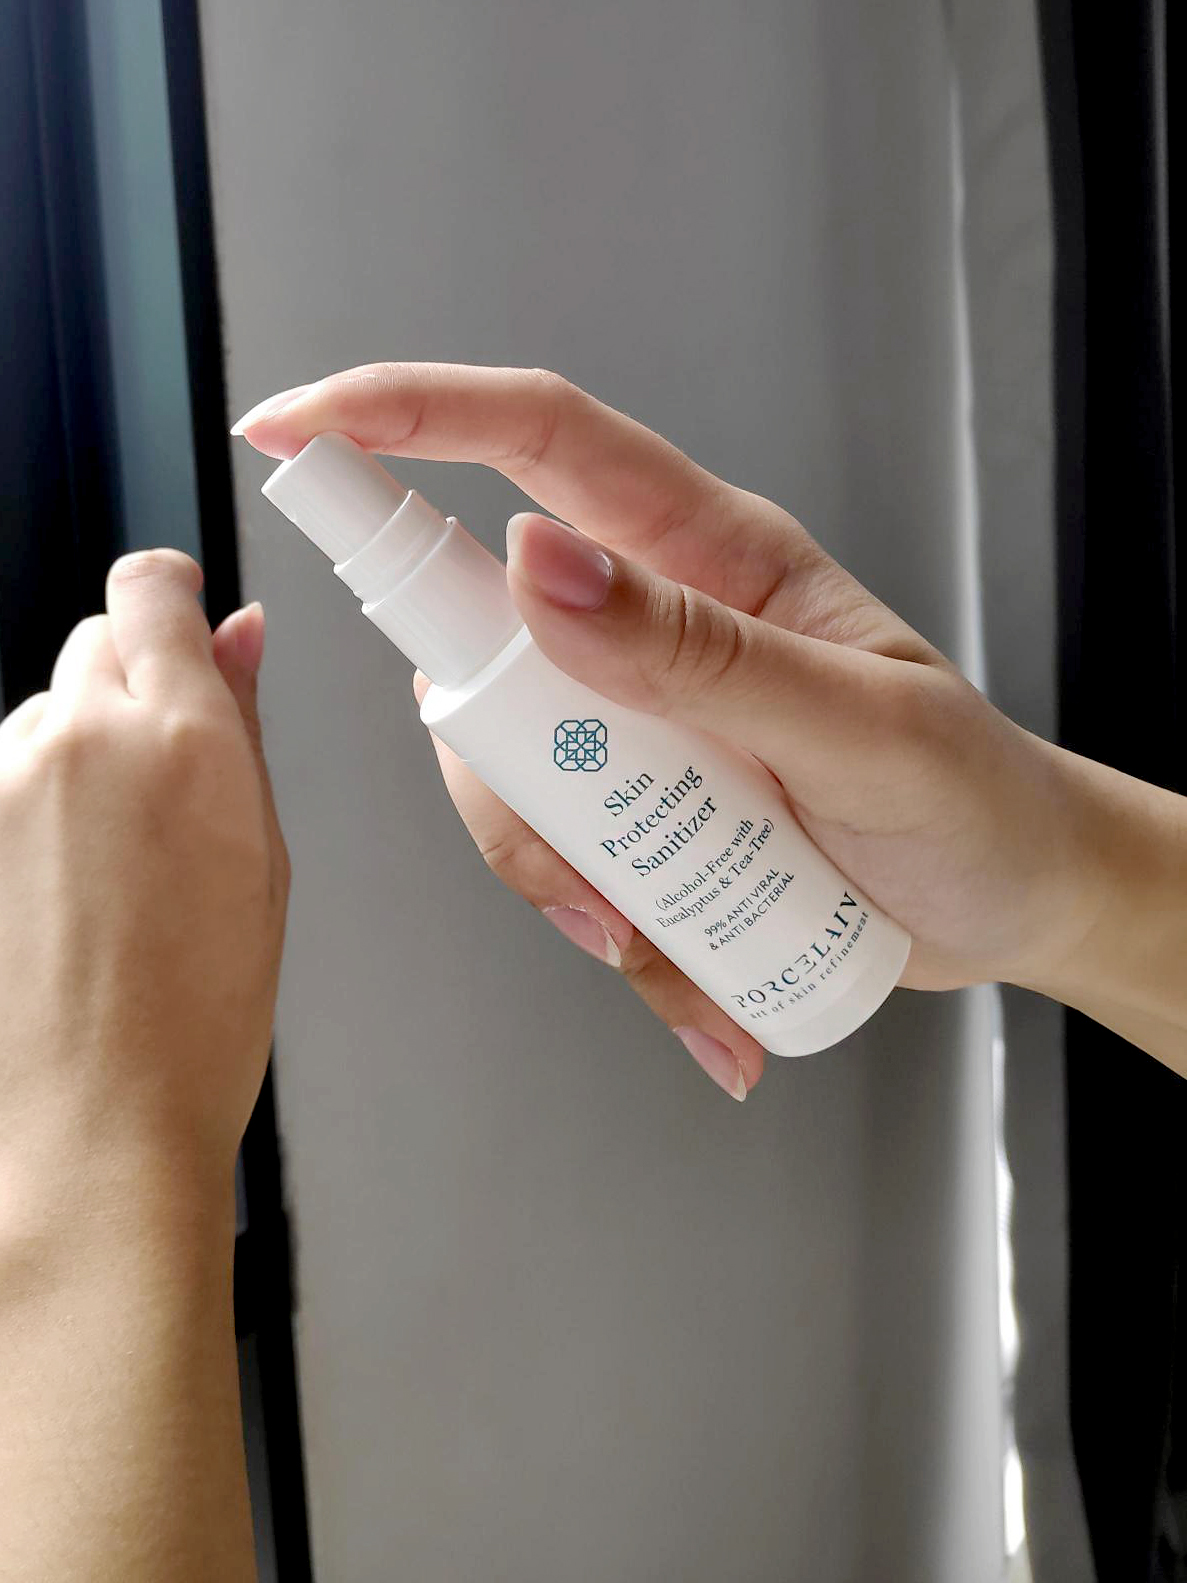 Porcelain's skin-protecting sanitizer